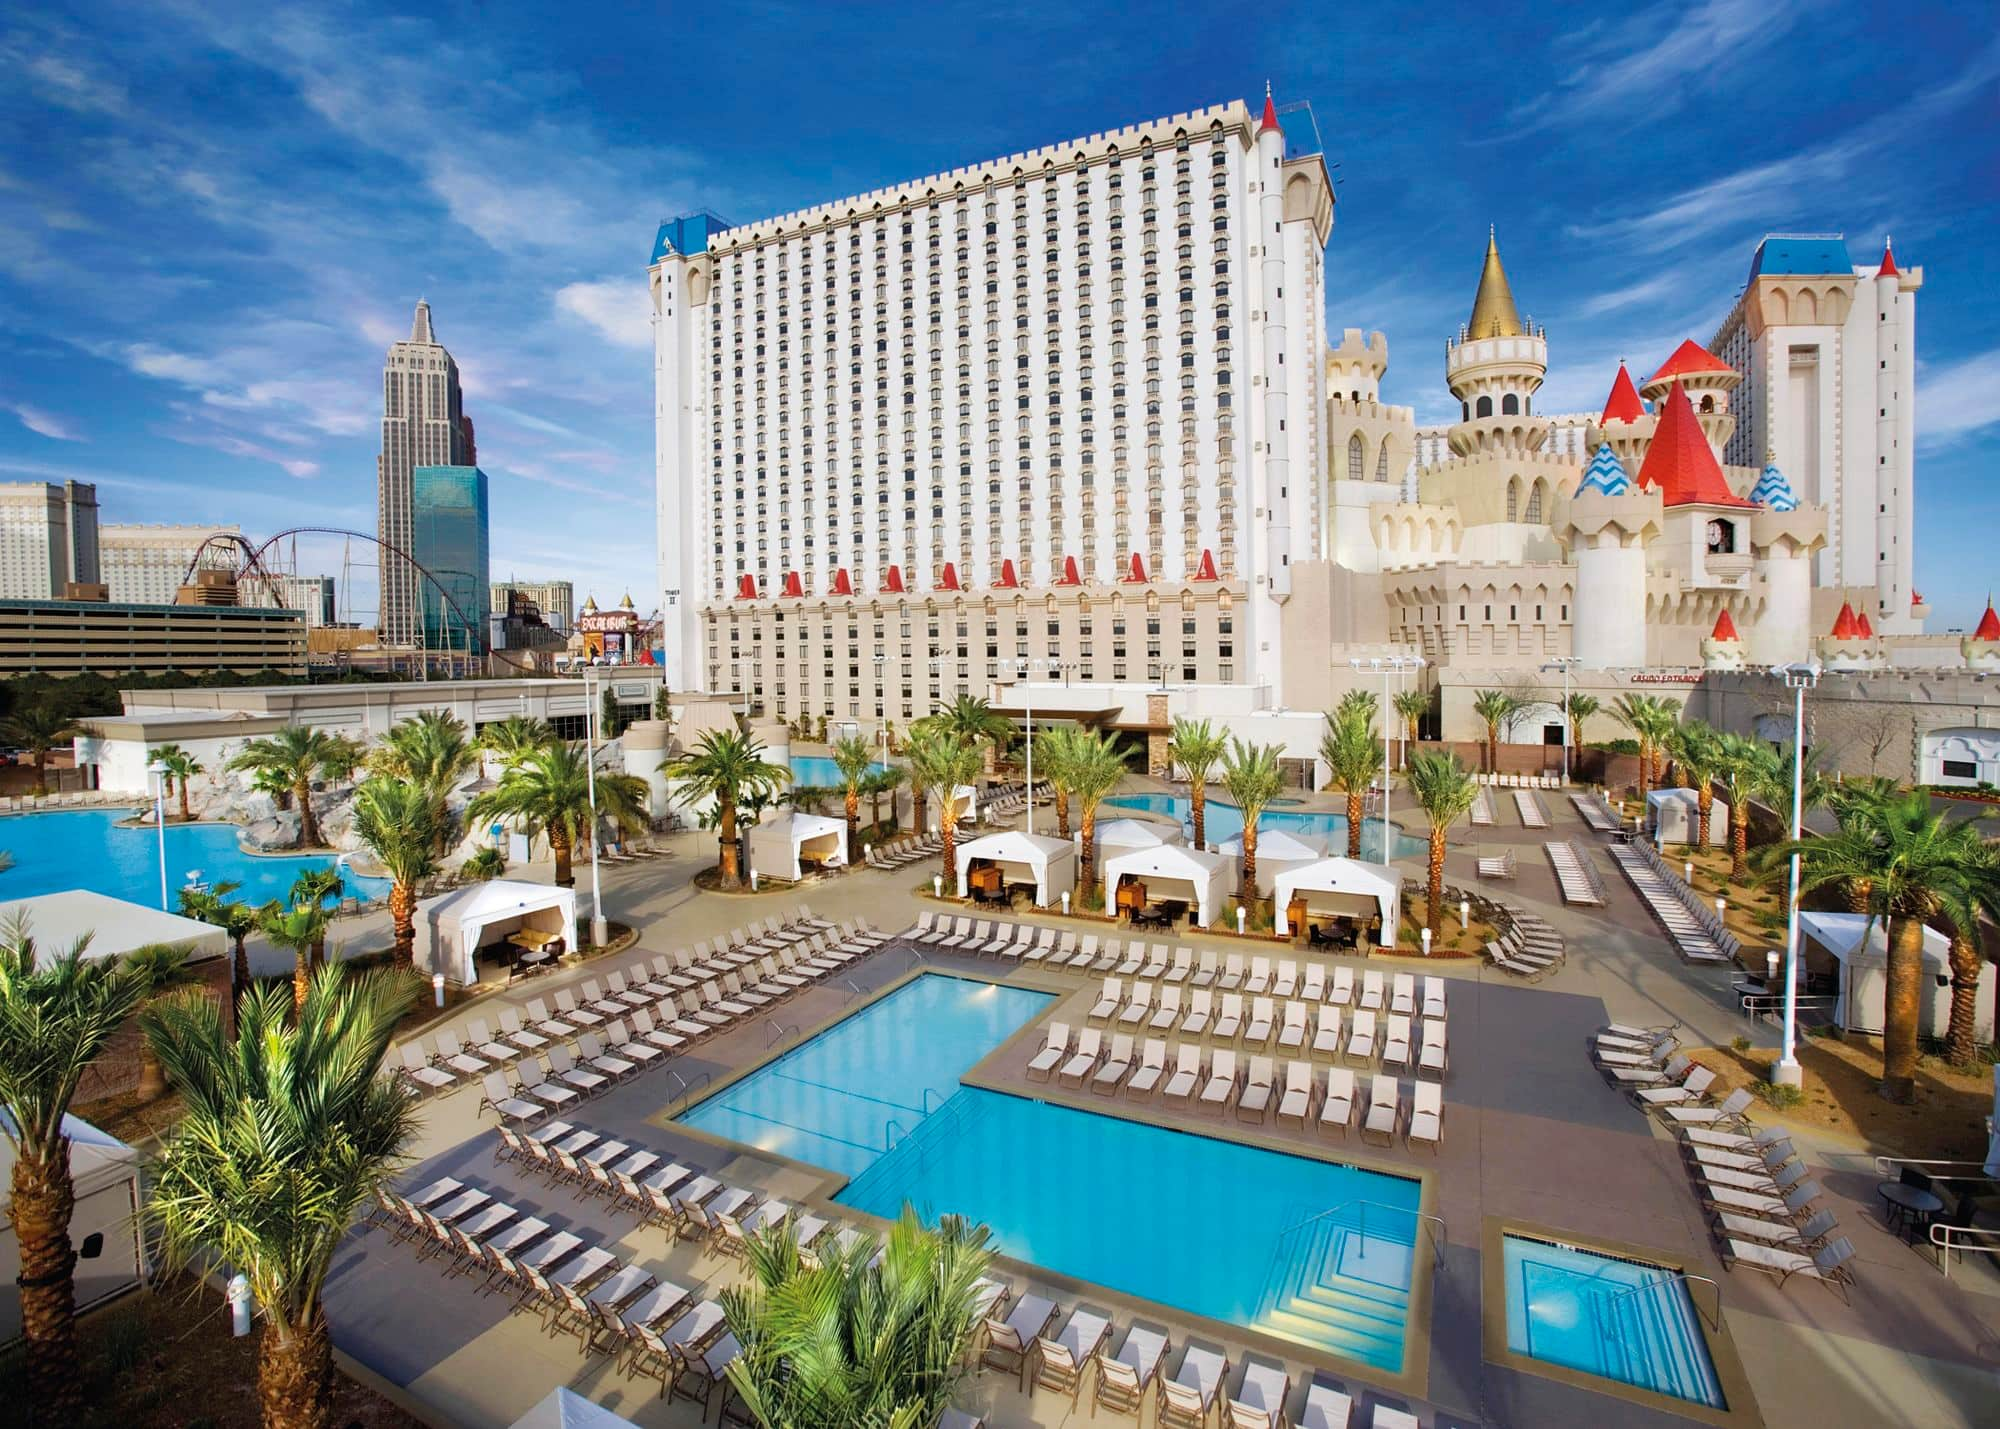 Excalibur hotel and casino booking online spiele kostenlos casino book of ra